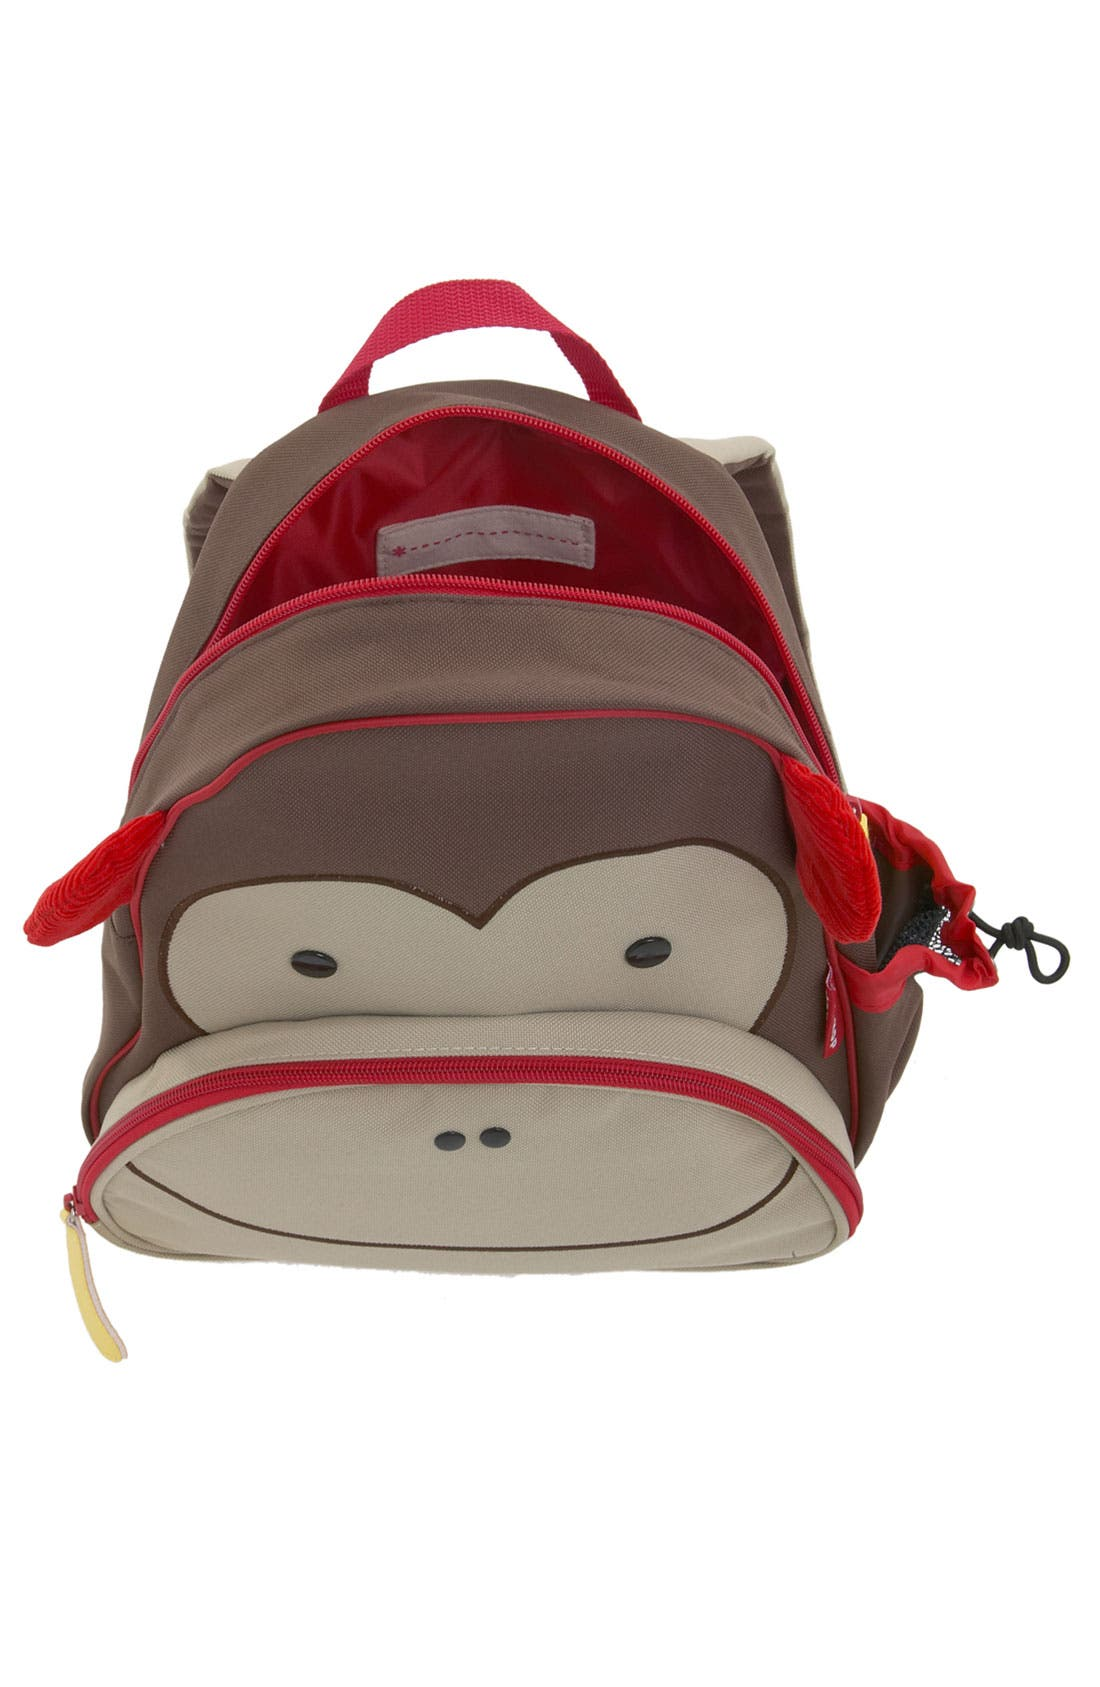 Zoo Pack Backpack,                             Alternate thumbnail 3, color,                             Brown